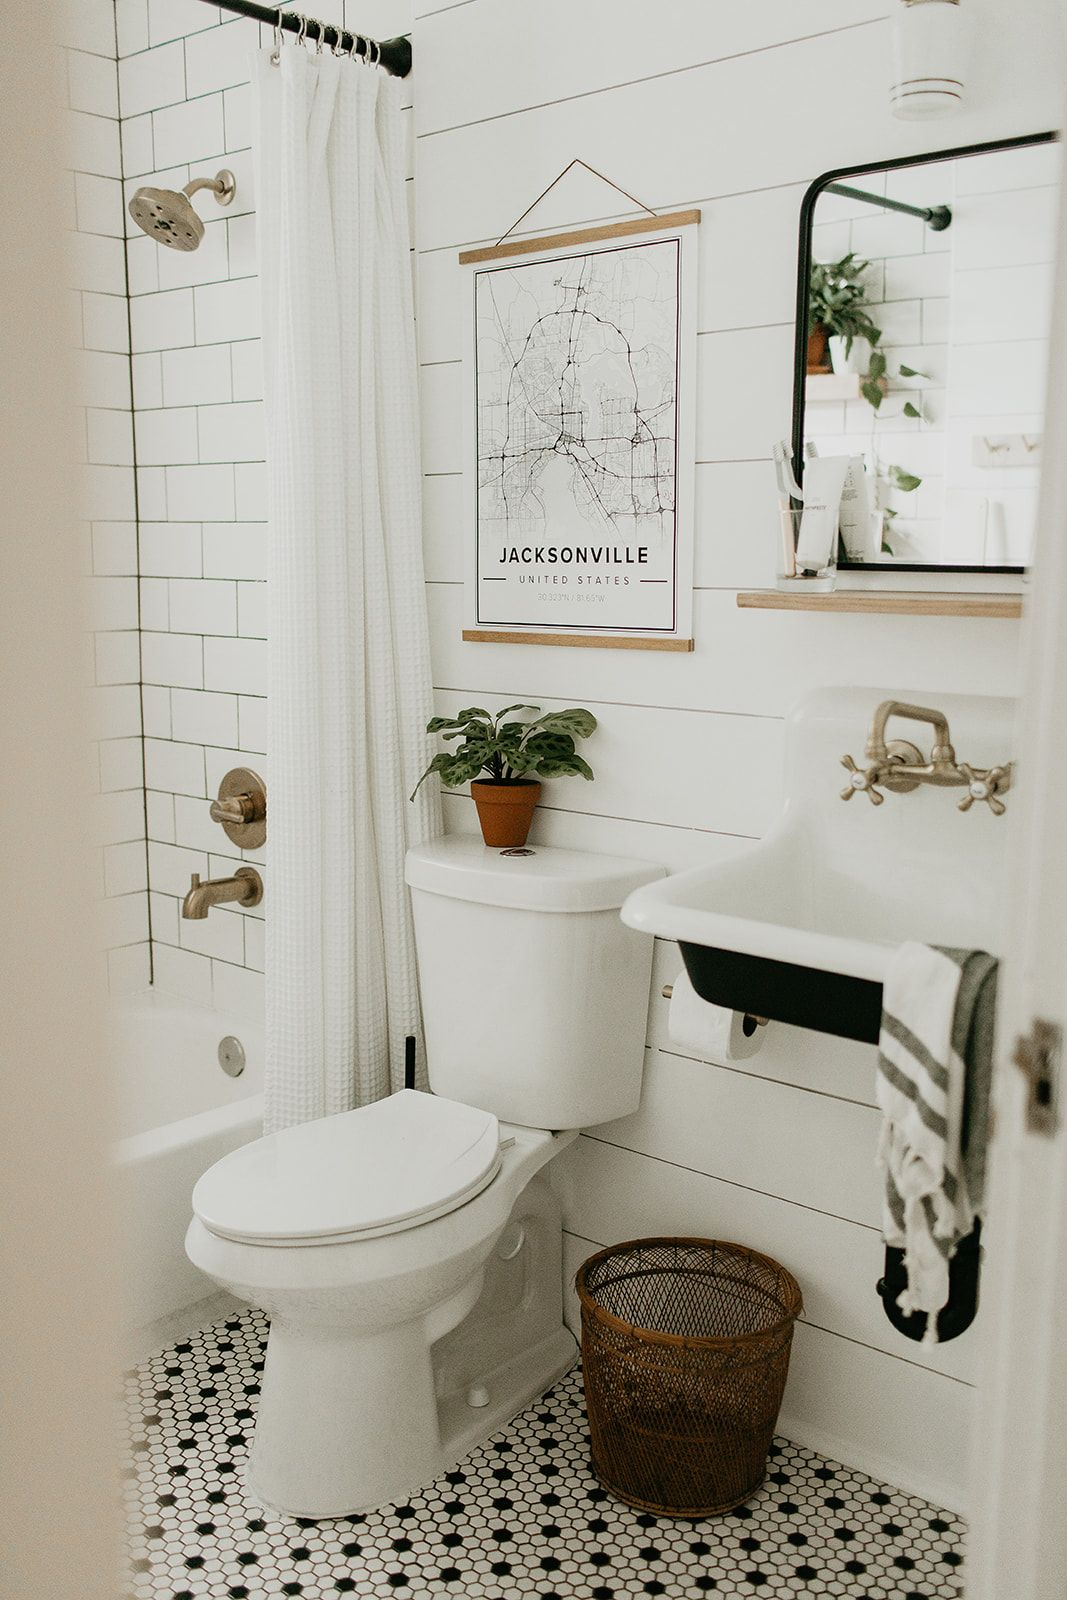 Bathroom renovation, modern vintage bathroom, farm sink, black white brass, shiplap, house plants. #modernvintagedecor